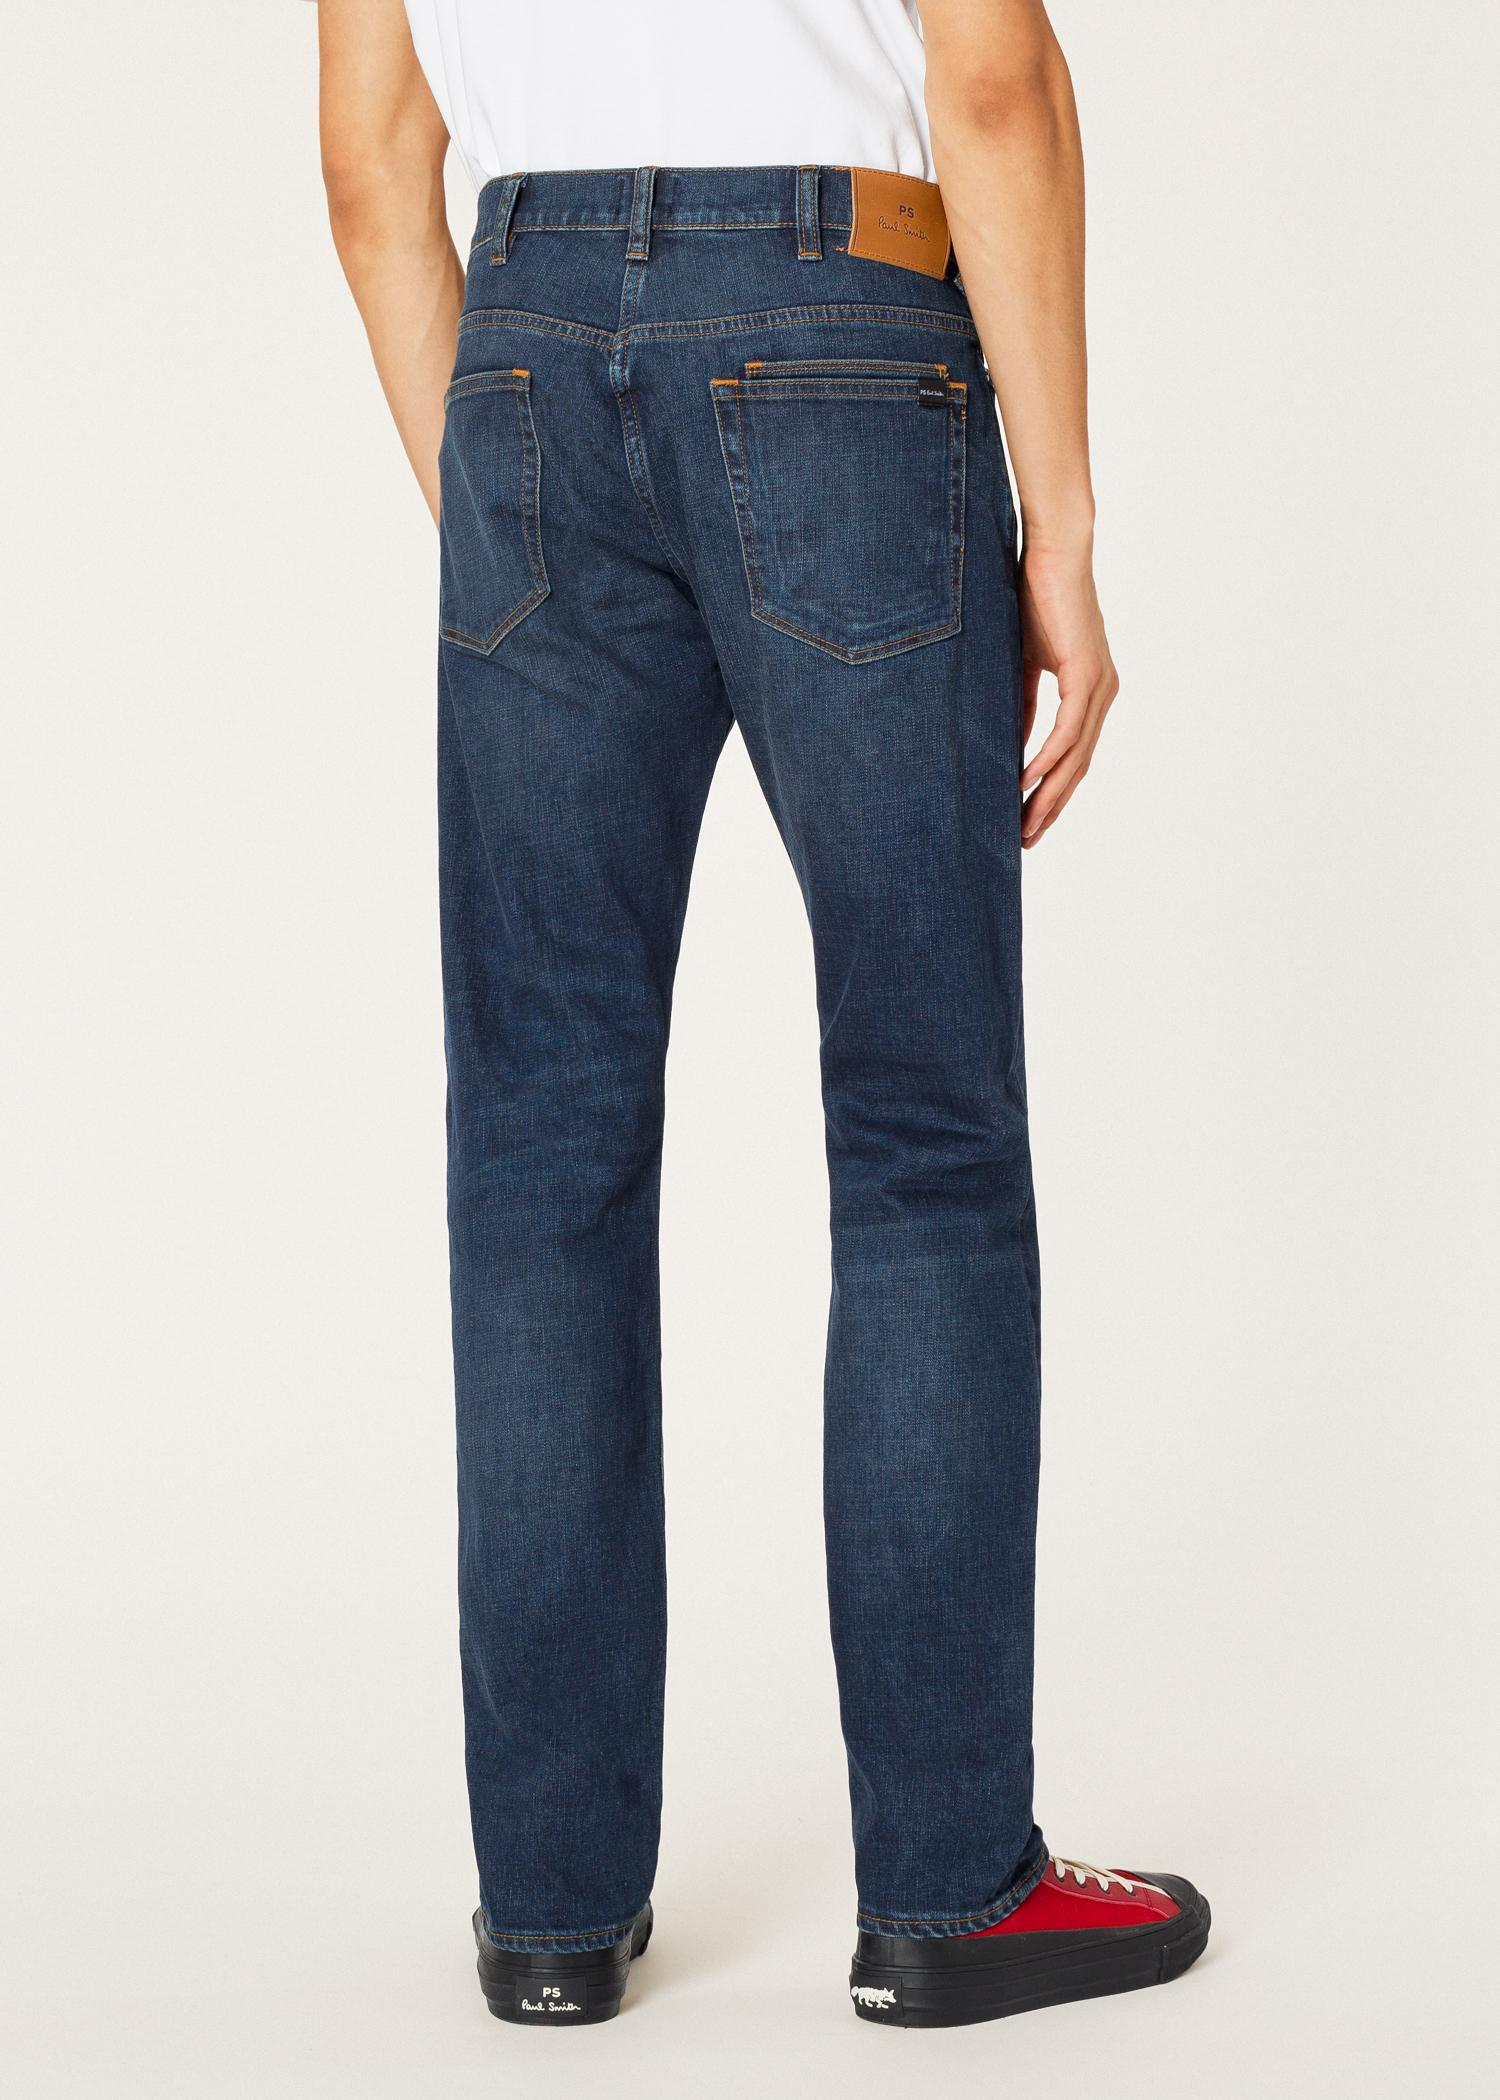 3941ce85d655 Paul Smith - Standard-fit 11.8oz  crosshatch Stretch  Blue-rinse Jeans.  View fullscreen